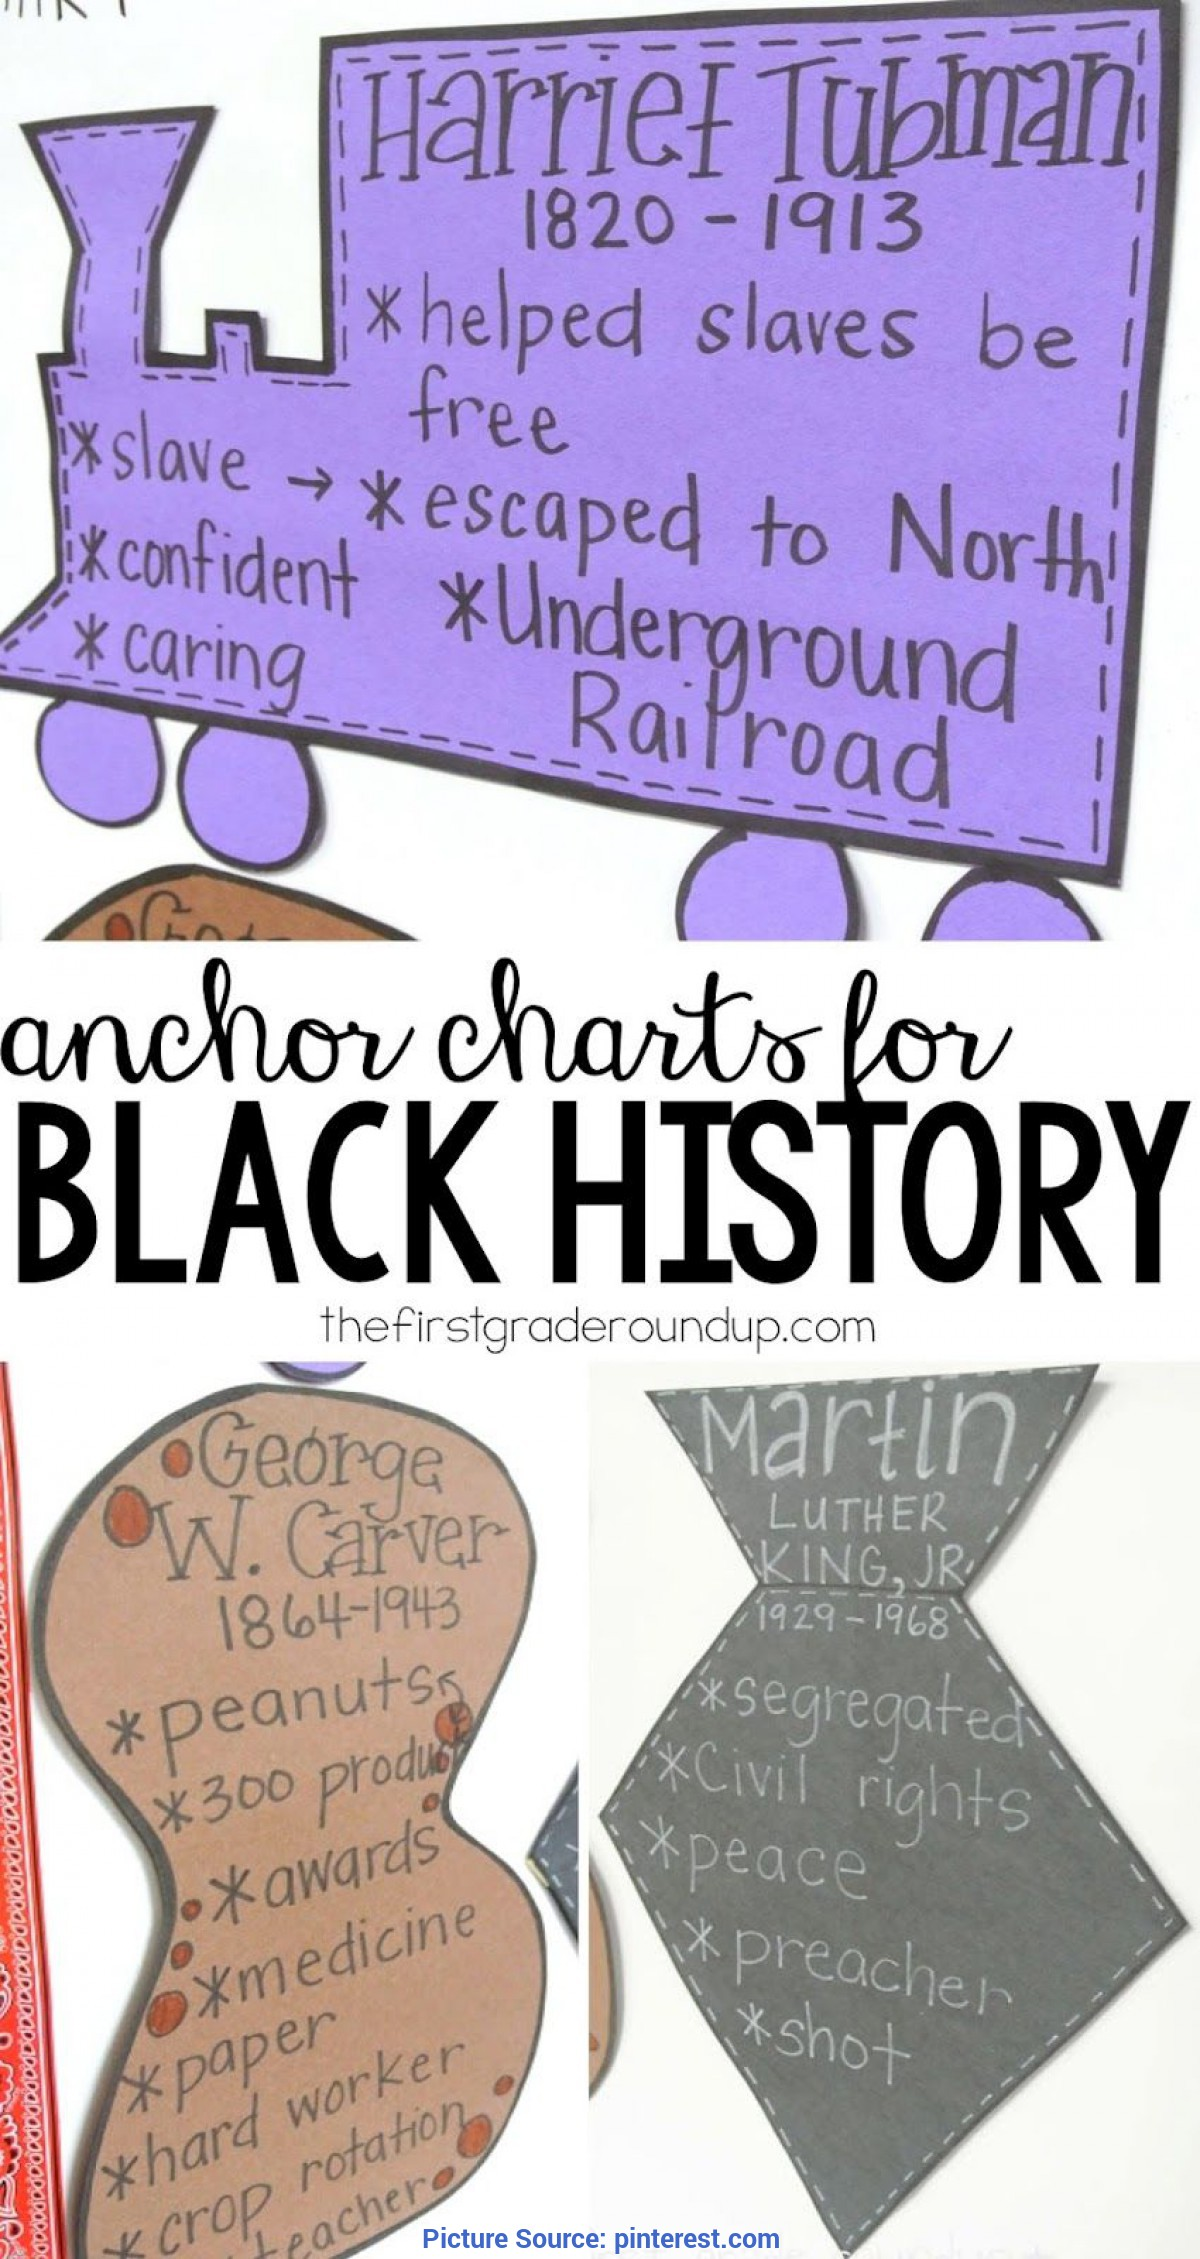 hight resolution of Newest 1St Grade Lesson Plans For Black History Month Black History Month: George  Washington Carver Thefirstgraderoundu - Ota Tech